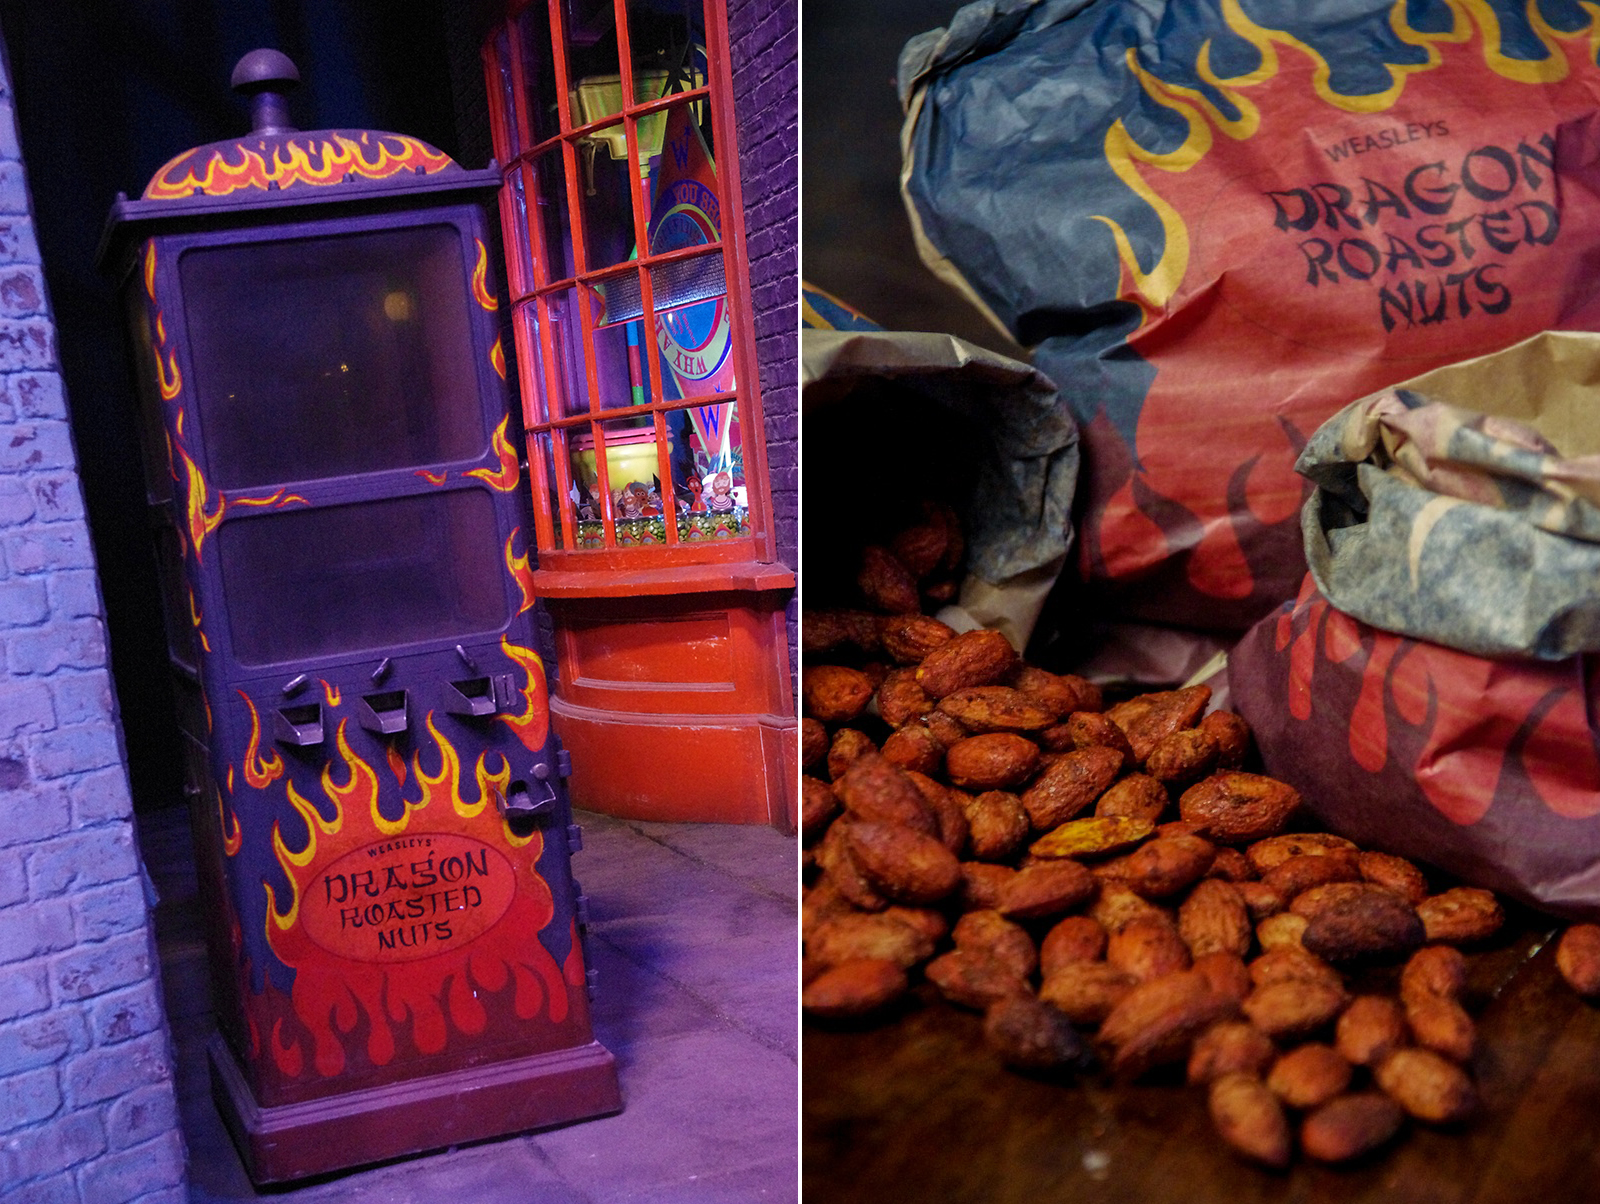 Dragon Roasted Nuts vending machine in Diagon Alley outside Weasleys Wizard Wheezes